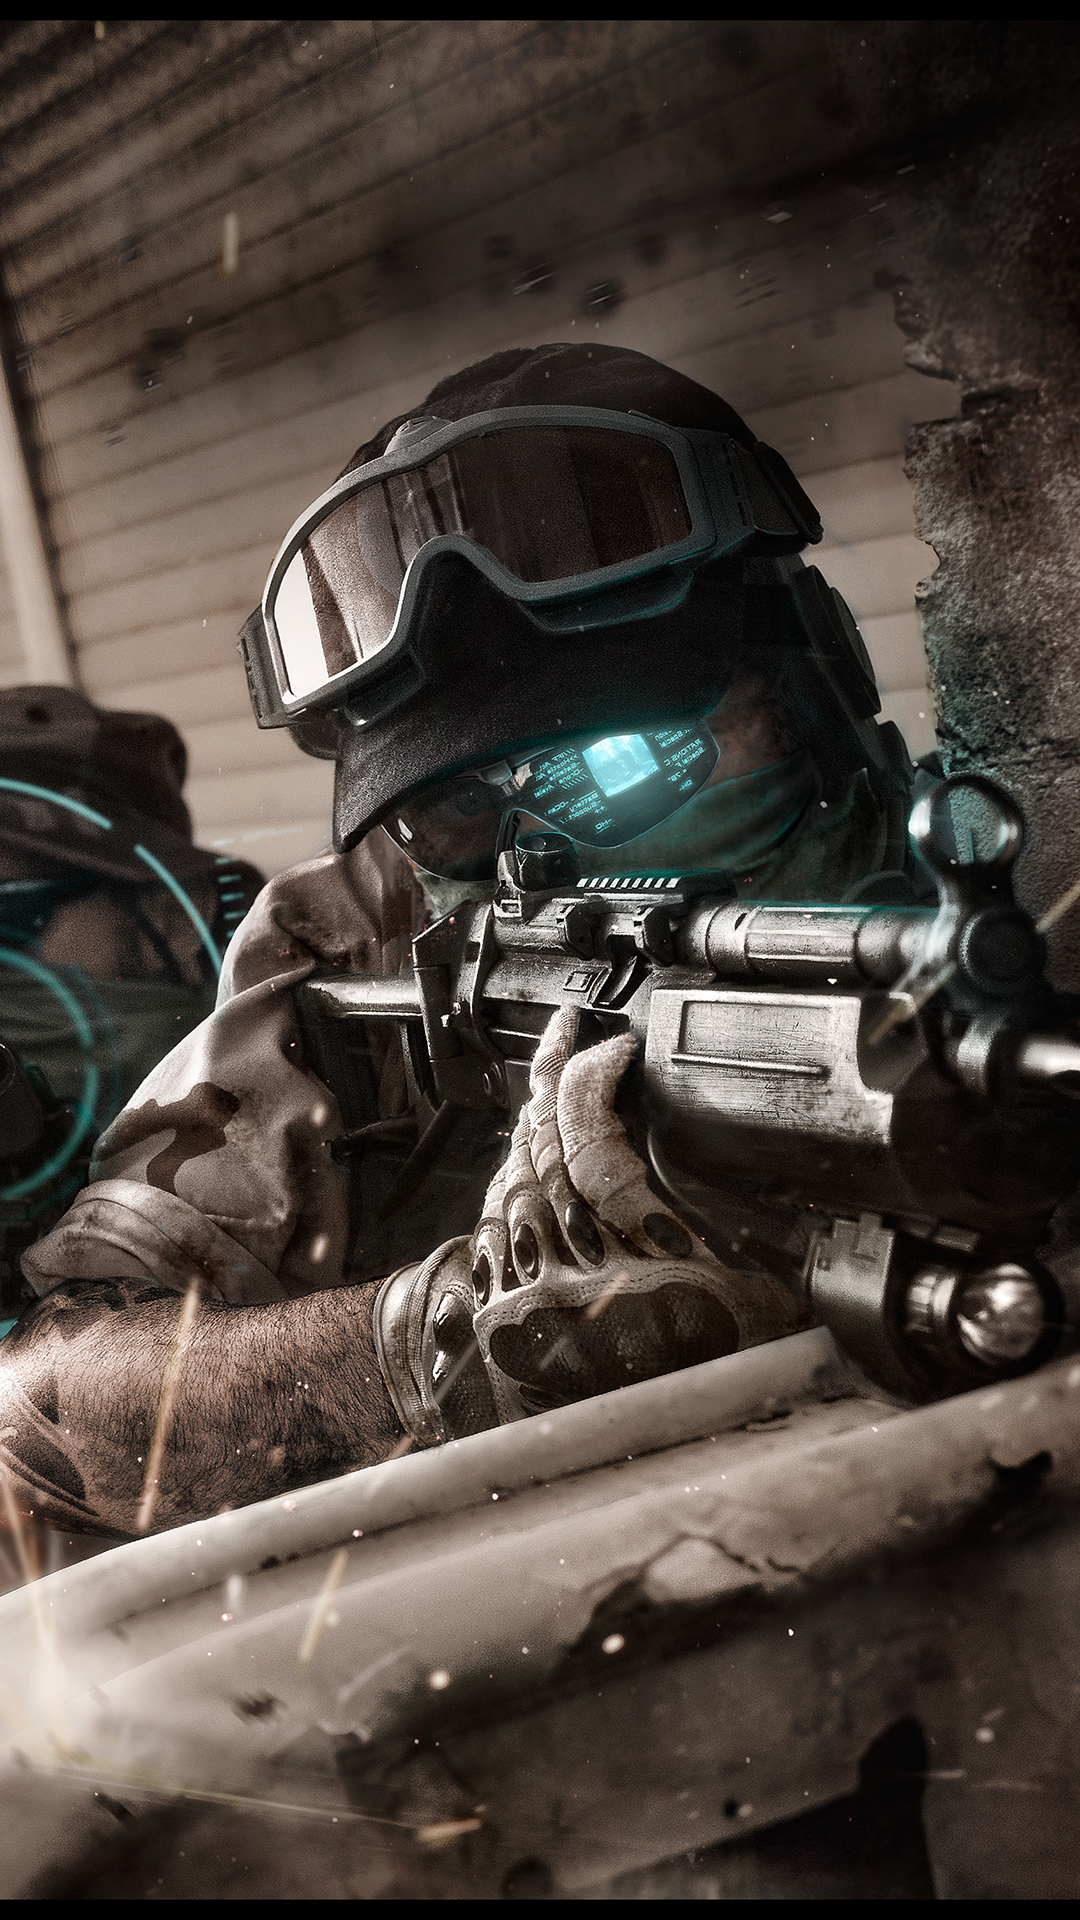 Htc One M8 Wallpaper Hd Ghost Recon Htc One Wallpaper Best Htc One Wallpapers